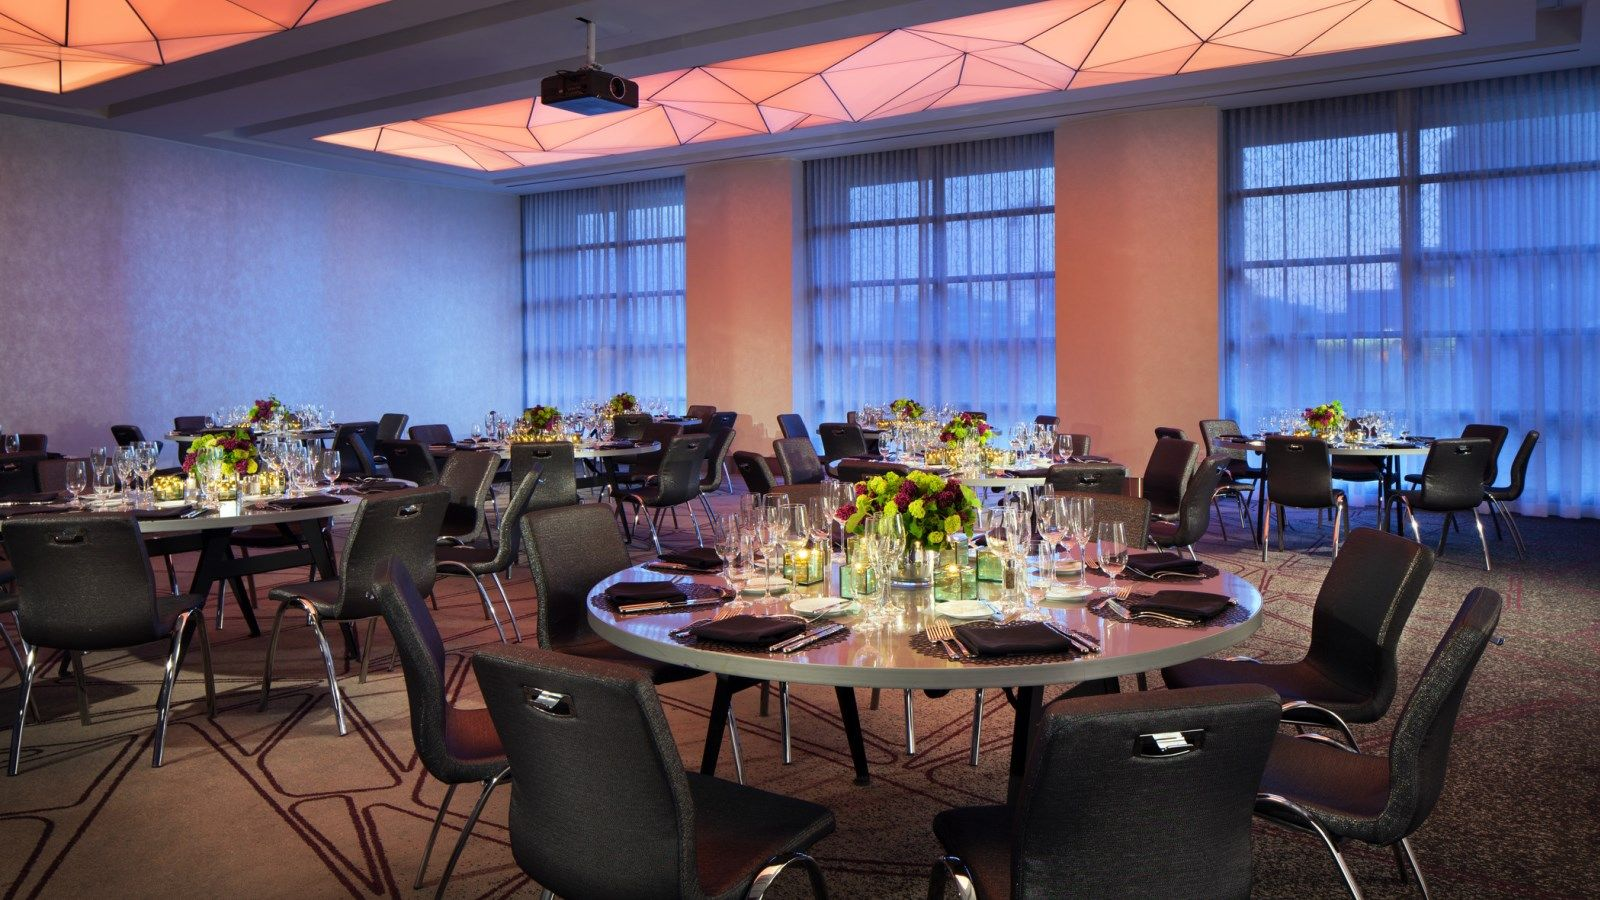 San Francisco Meeting Space | Great Room Event Space